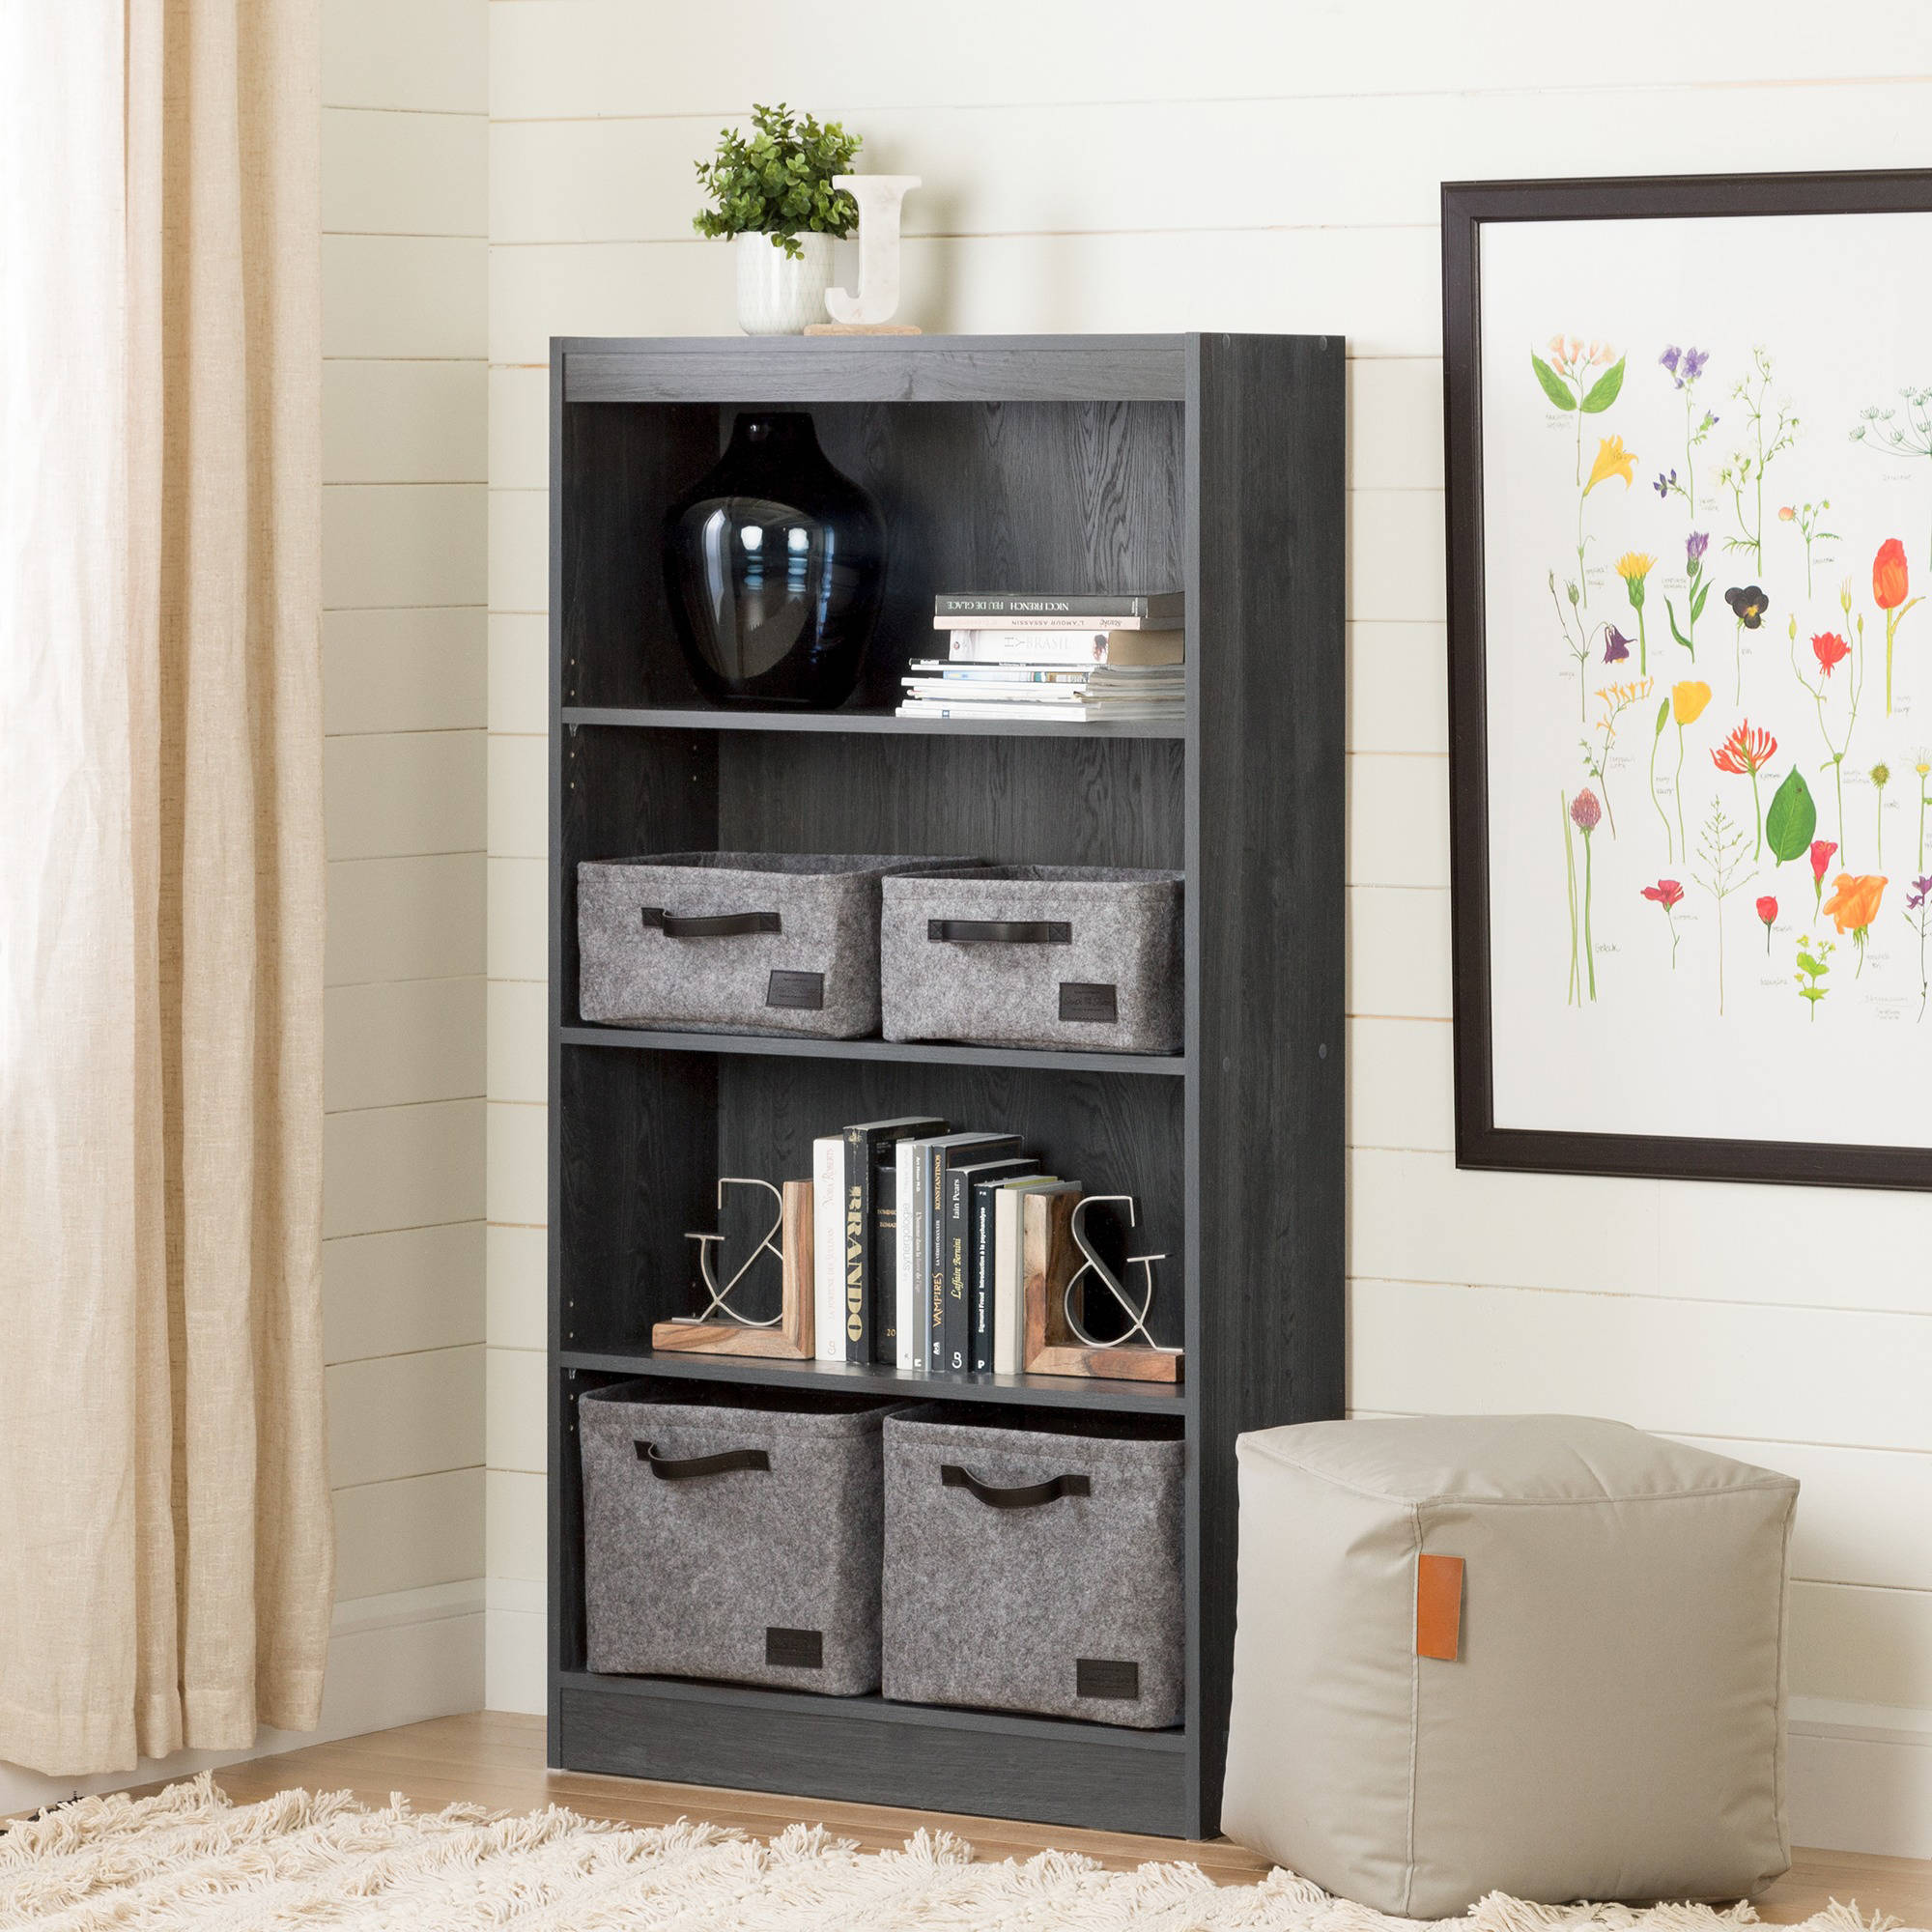 mainstays shelf astounding design of furniture size south ash shore walmart bookcase basics home full com black smart ebony photo axess collection